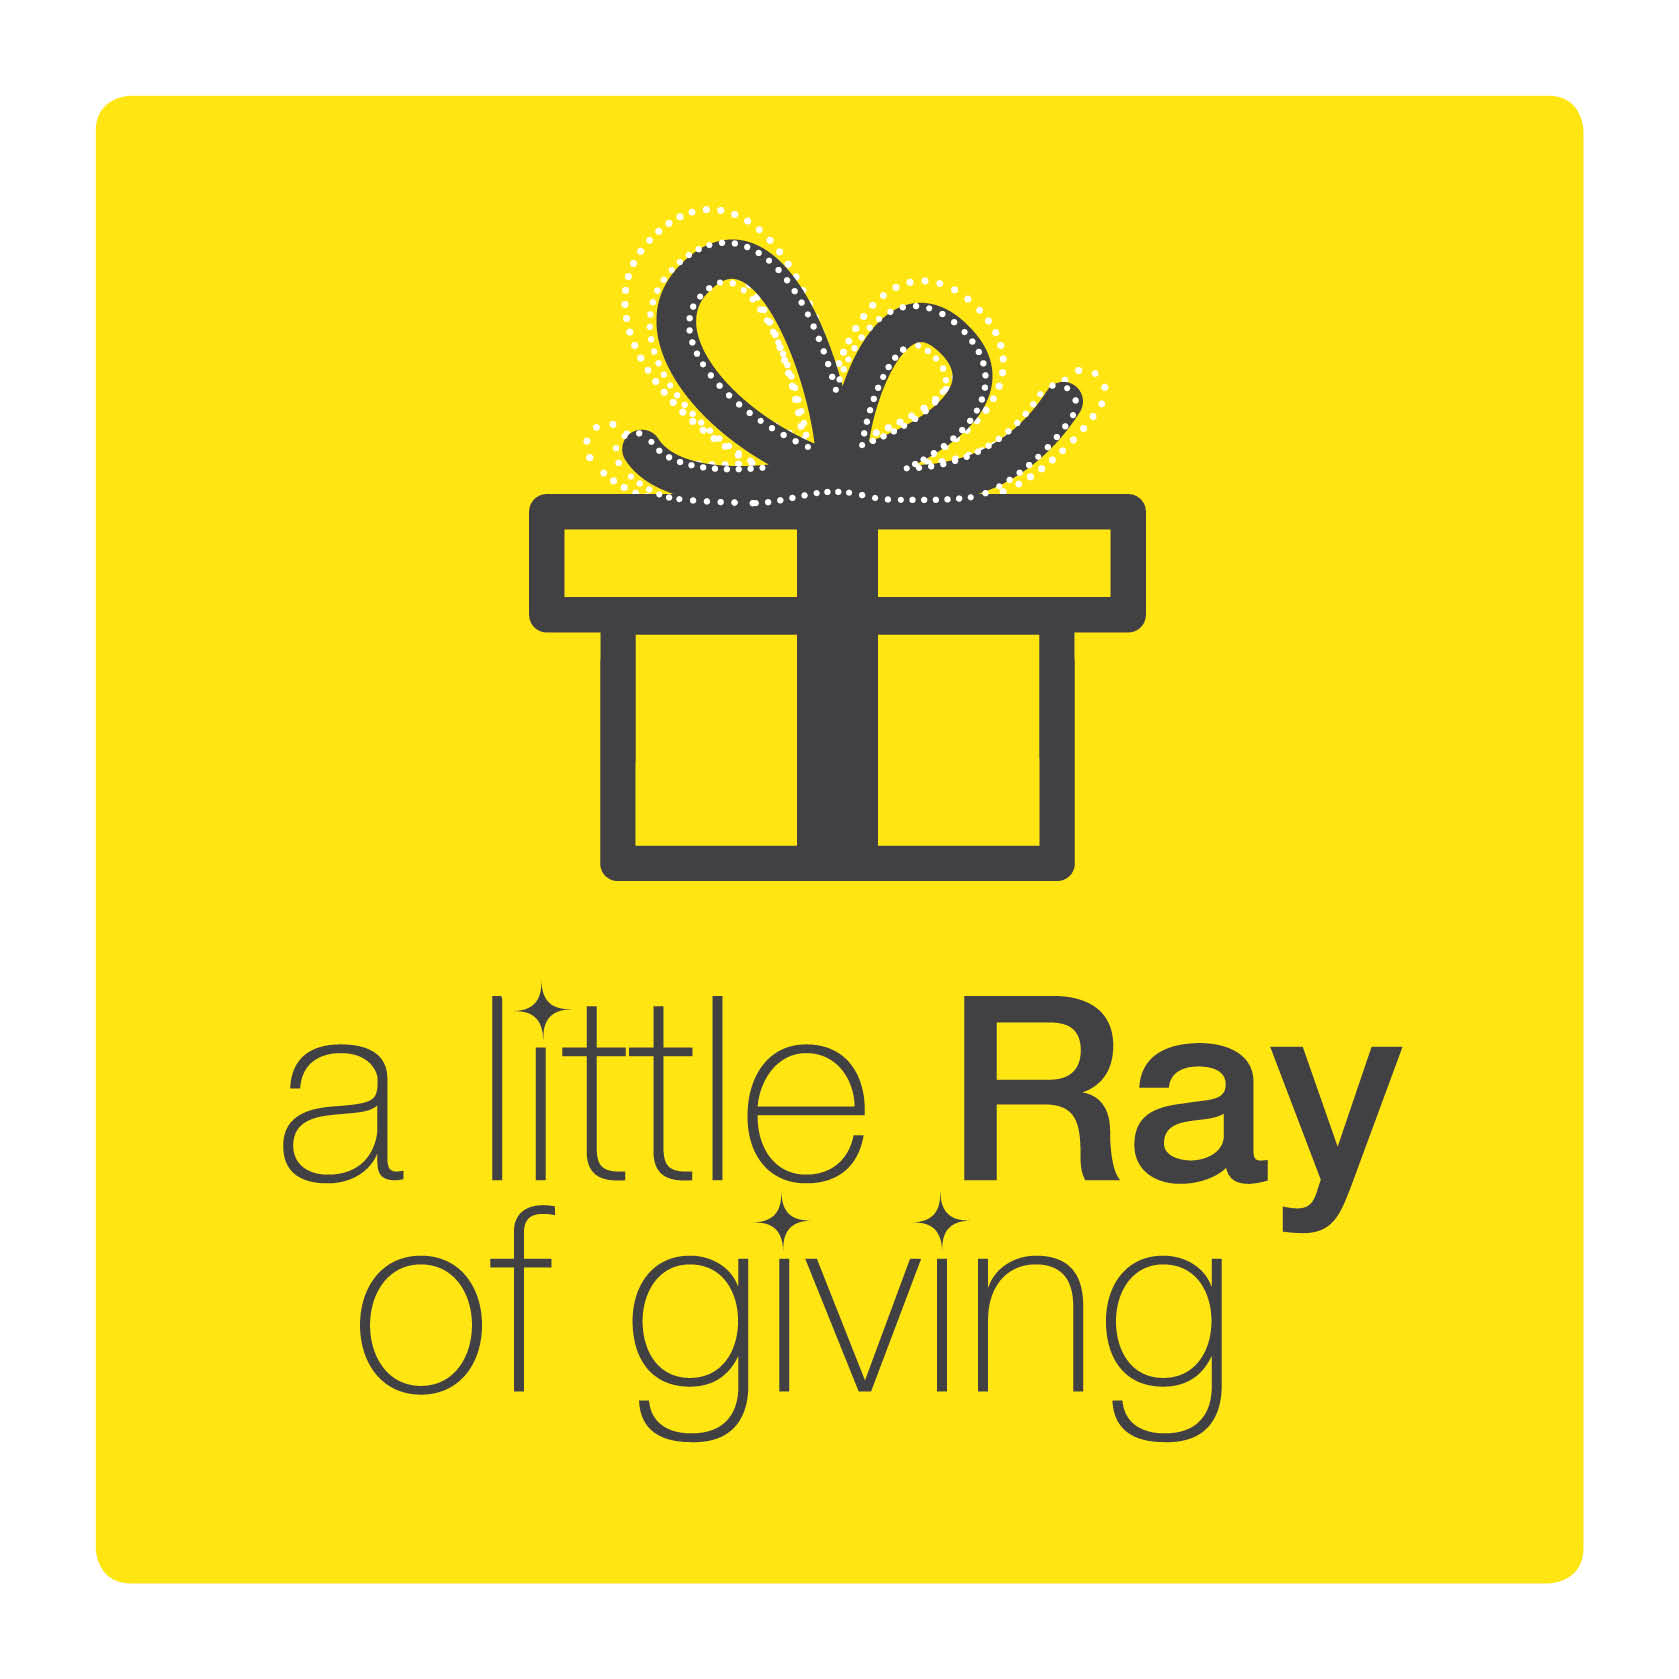 Facebook_instagram tile_A Little Ray of Giving_2014_Australia & NewZealand (1)